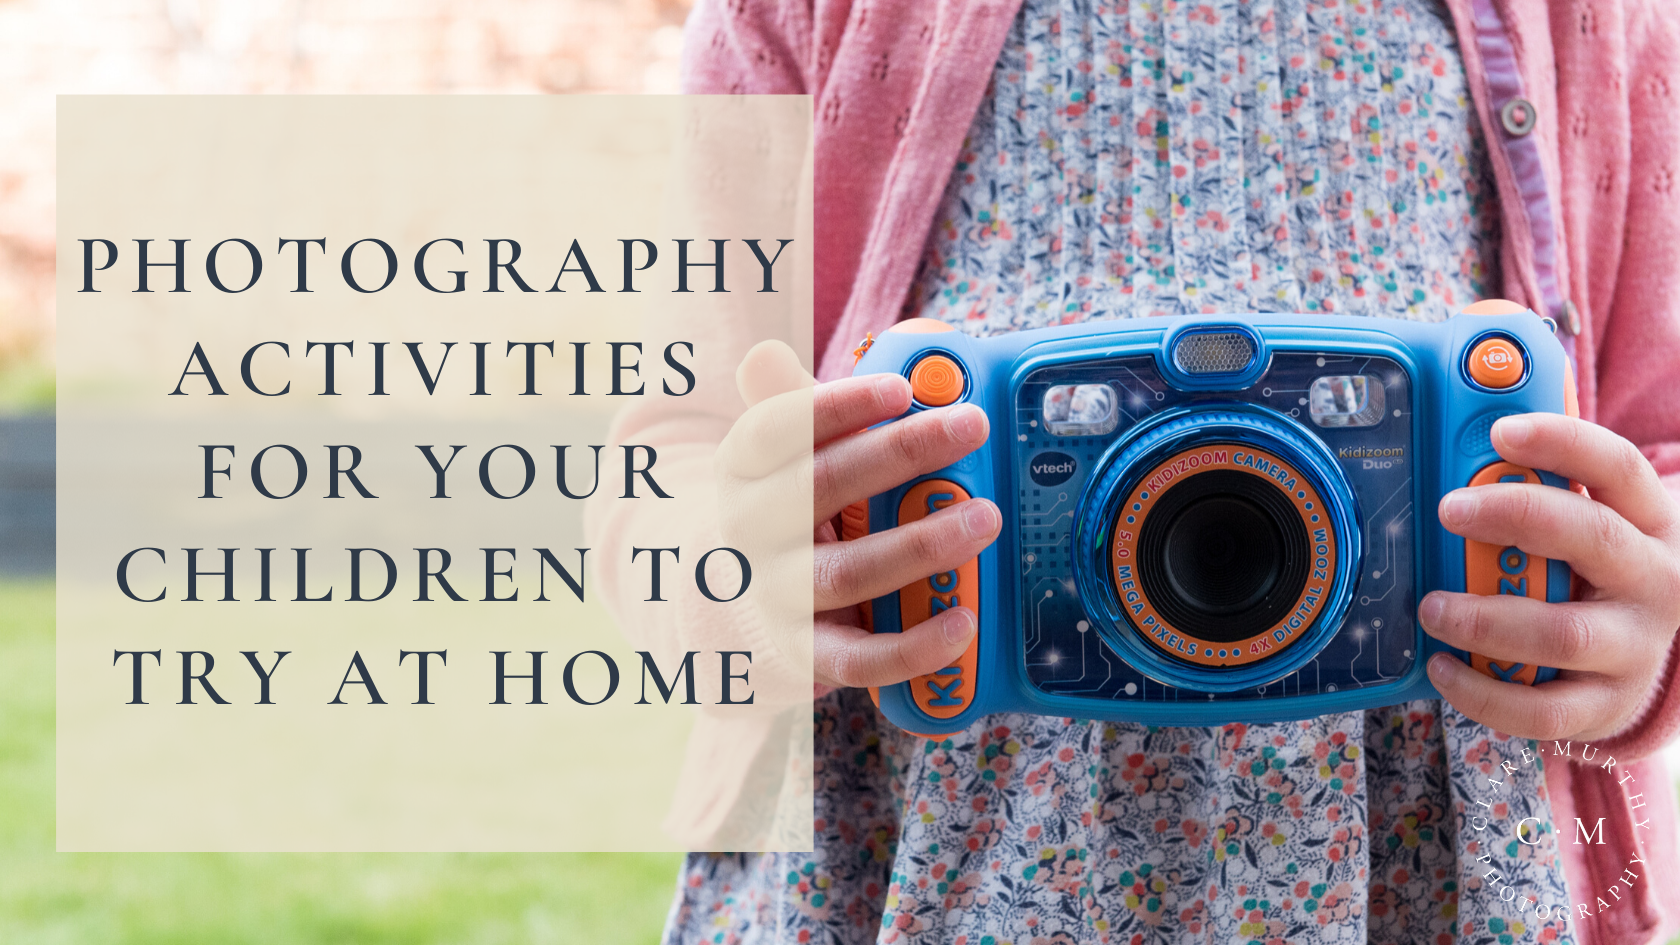 photography activities for children to try at home